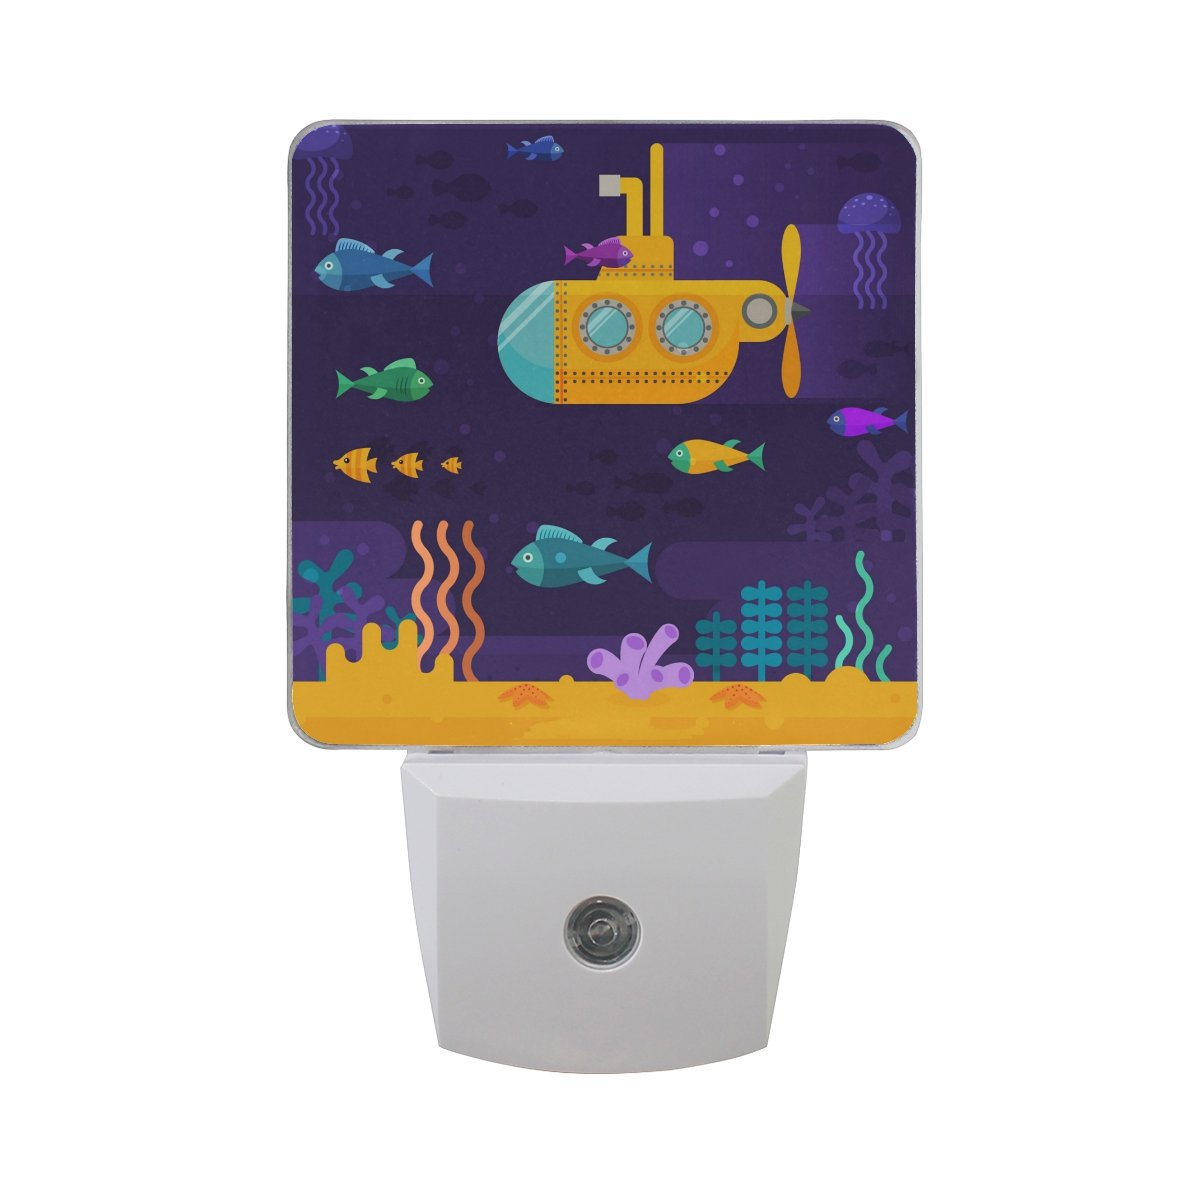 LED Night Light Yellow Submarine Auto Senor Dusk to Dawn Night Light Great for Bedroom Bathroom Living Room Hallway Any Dark Room, for Child and Adults by Saobao